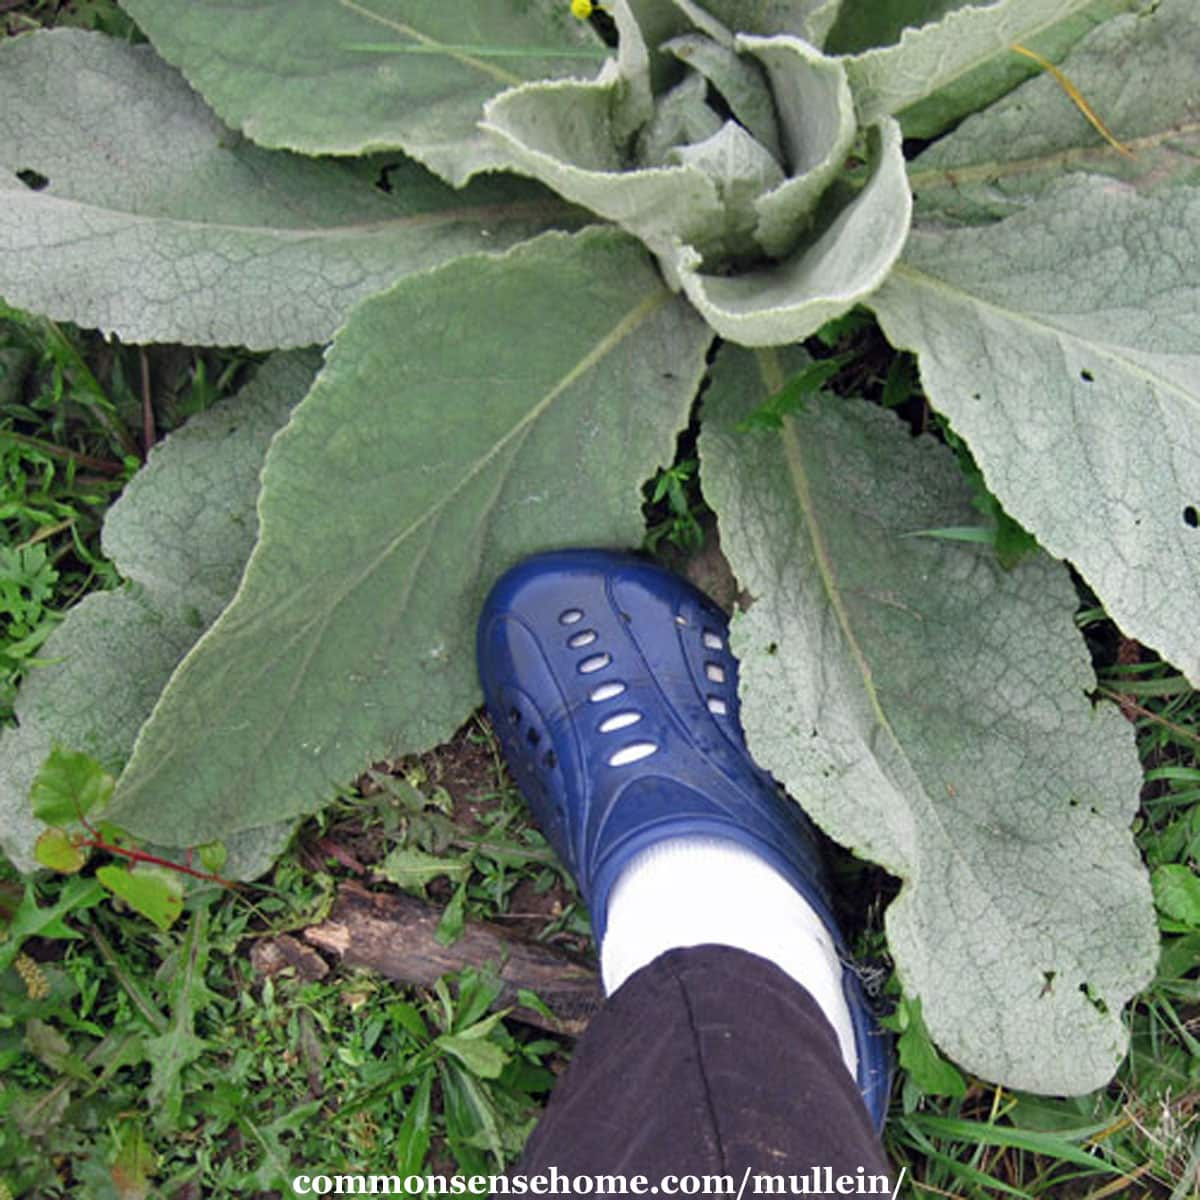 size eleven shoe next to mullein leaf for size comparison